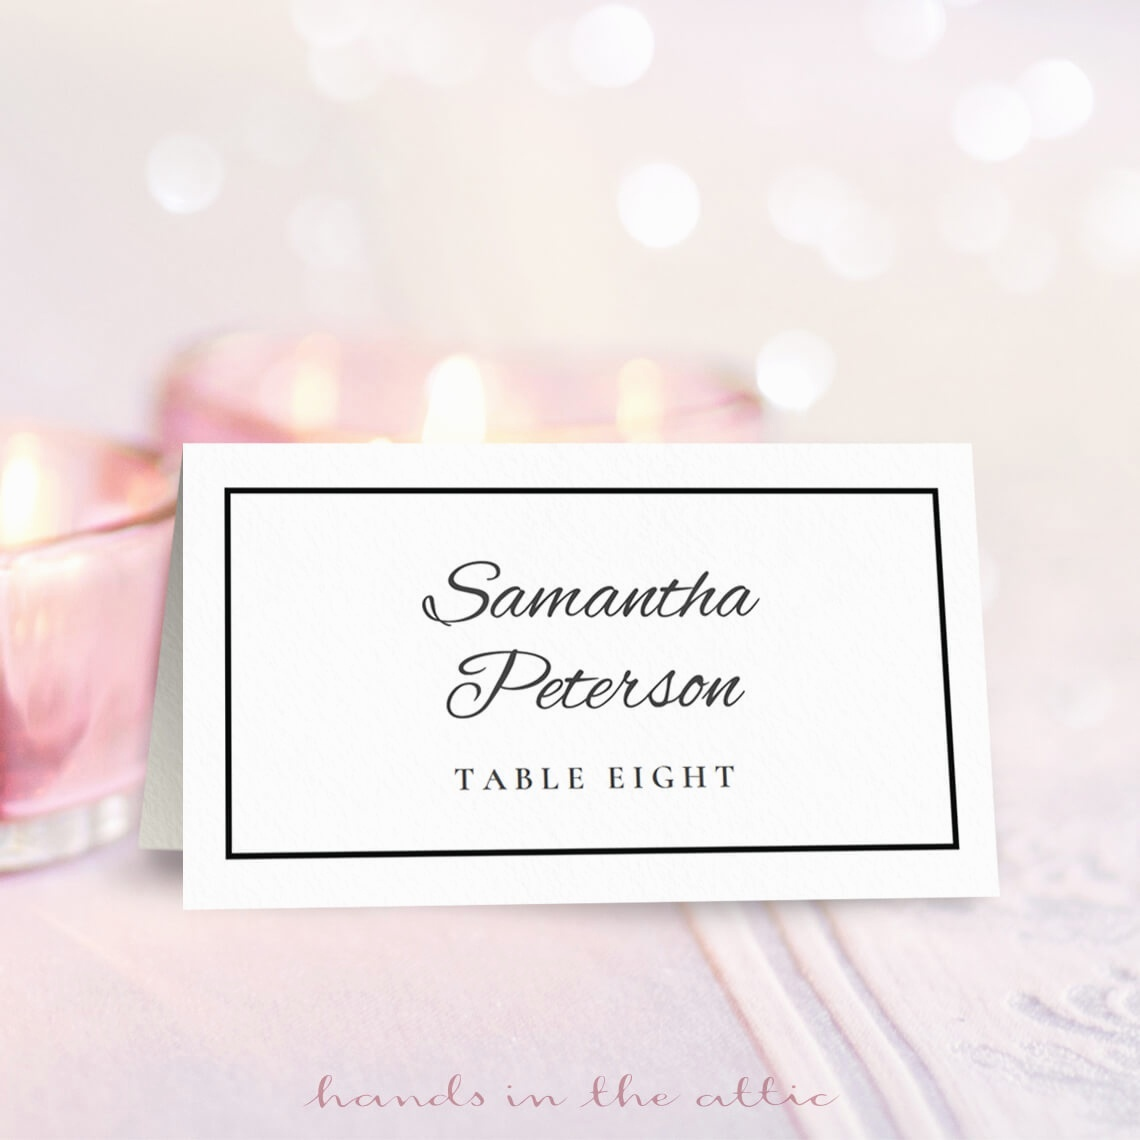 Free Wedding Place Card Template Top 13 Trends In Free - Marianowo - Free Printable Place Cards Template